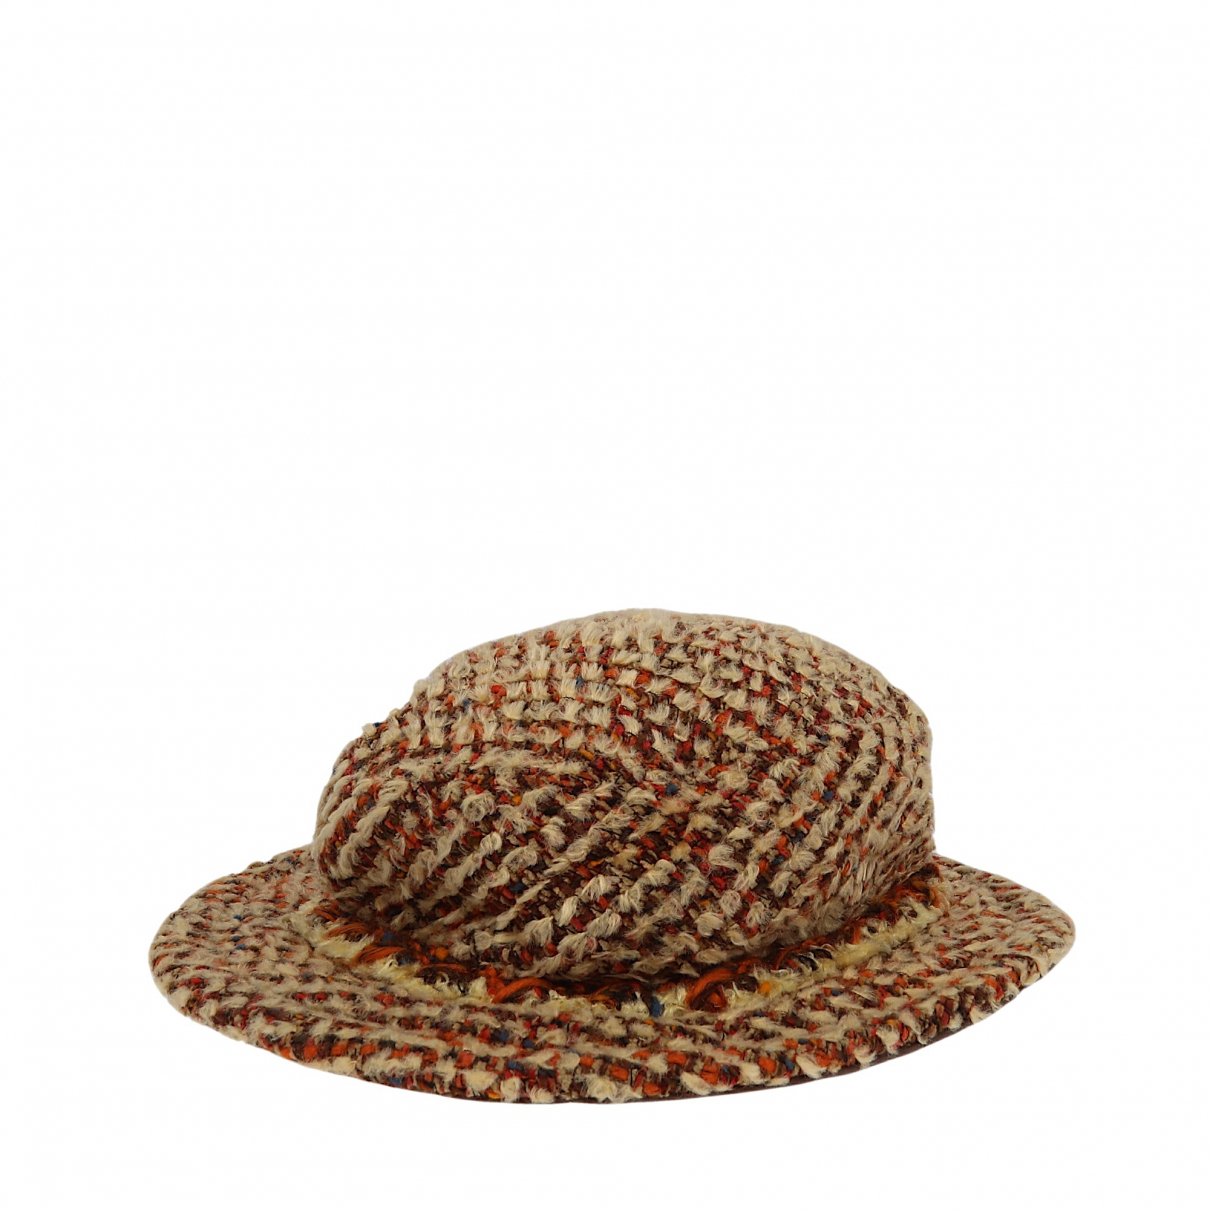 Chanel N Multicolour hat for Women 58 cm